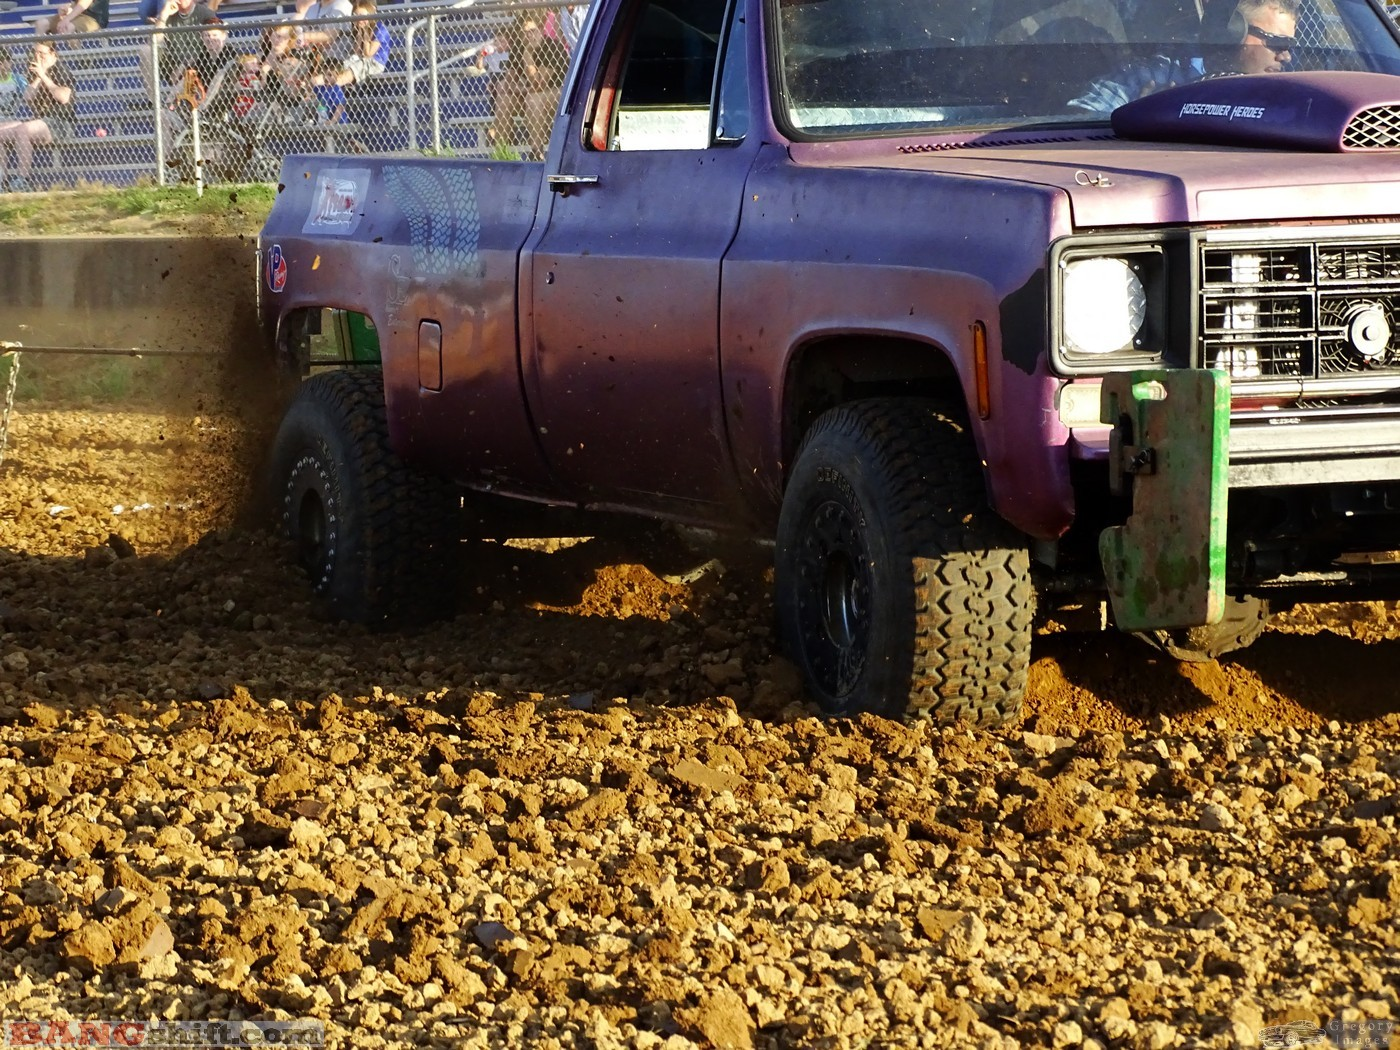 Kentucky Truck Tuggers Action Coverage: 4-Wheel Drive Combat At 4,300 and 6,000lbs!